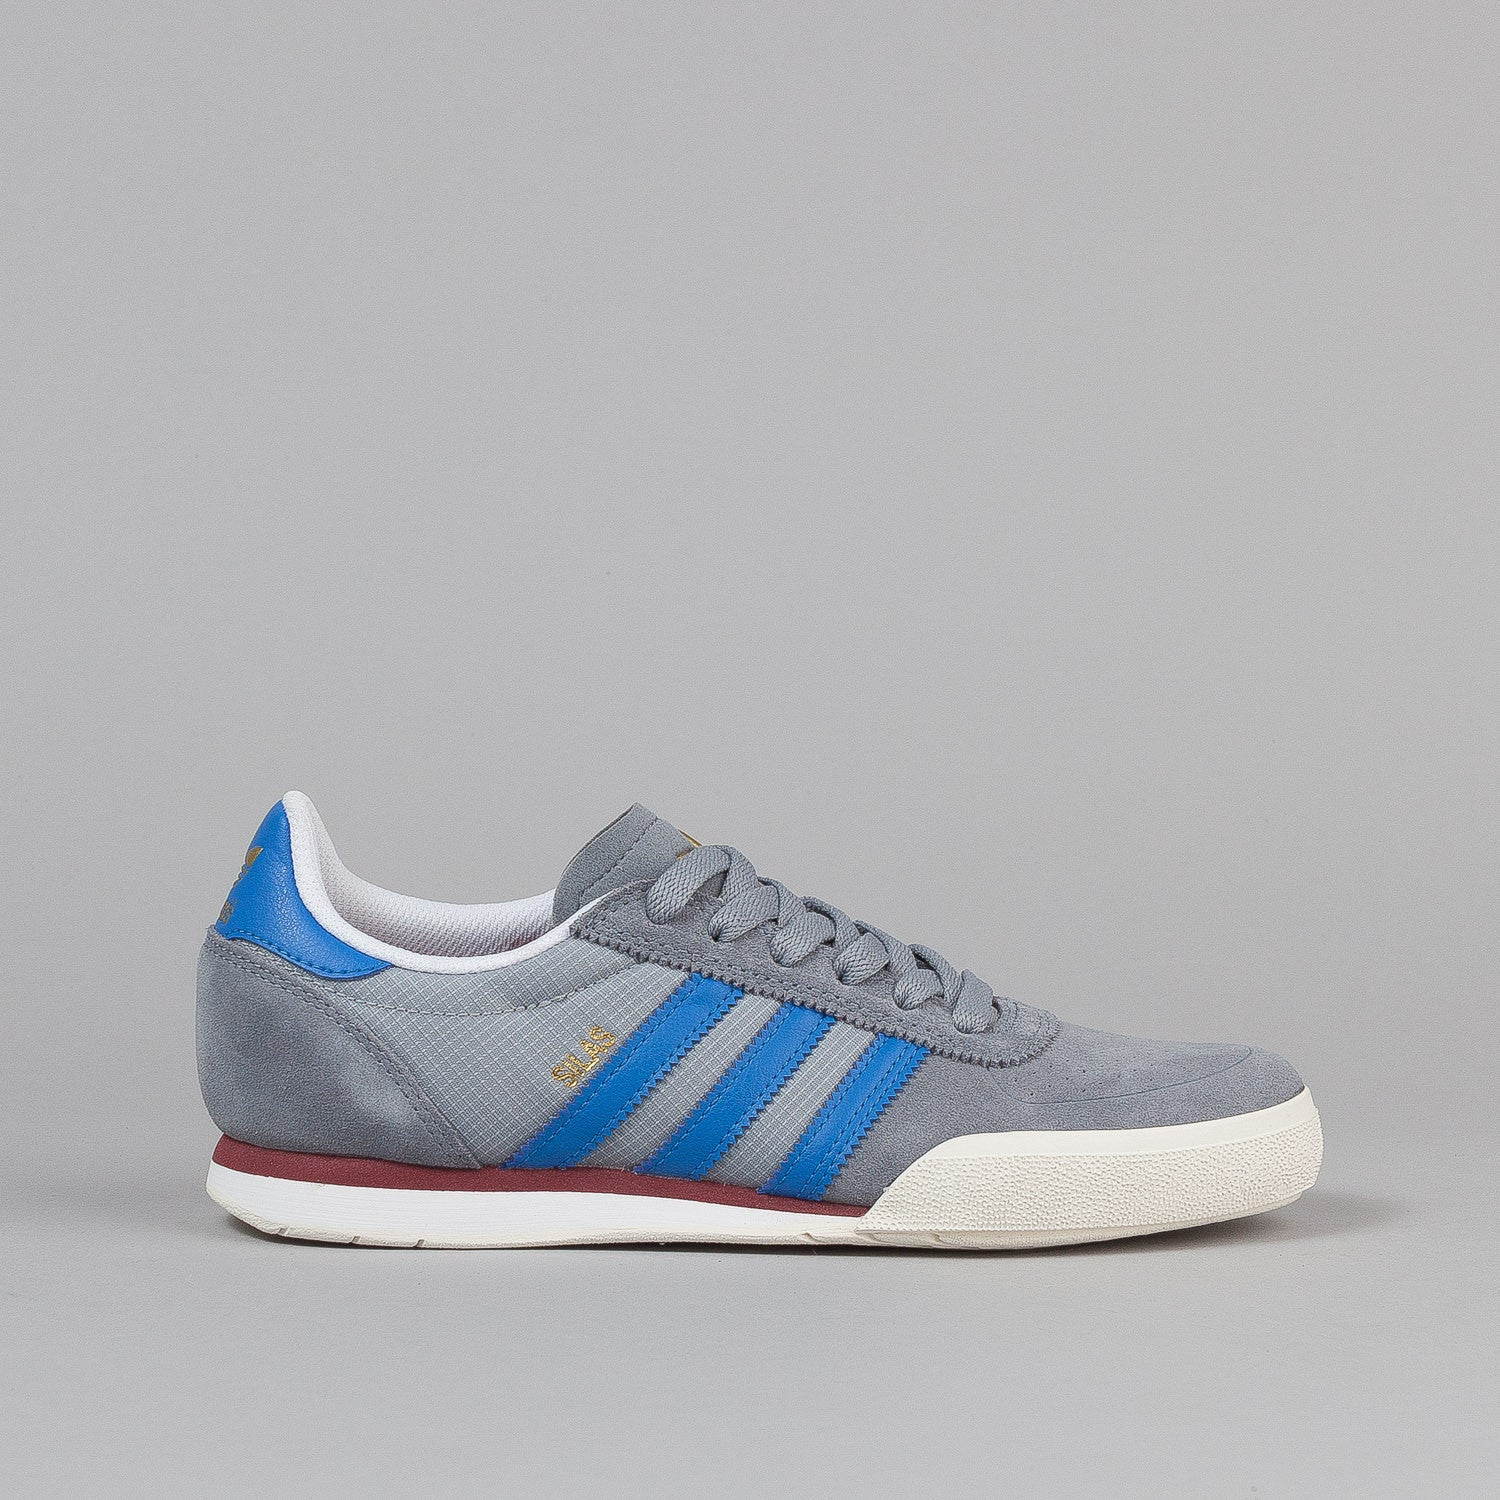 Adidas Silas SLR Tech Grey / Bluebird / St Nomad Red